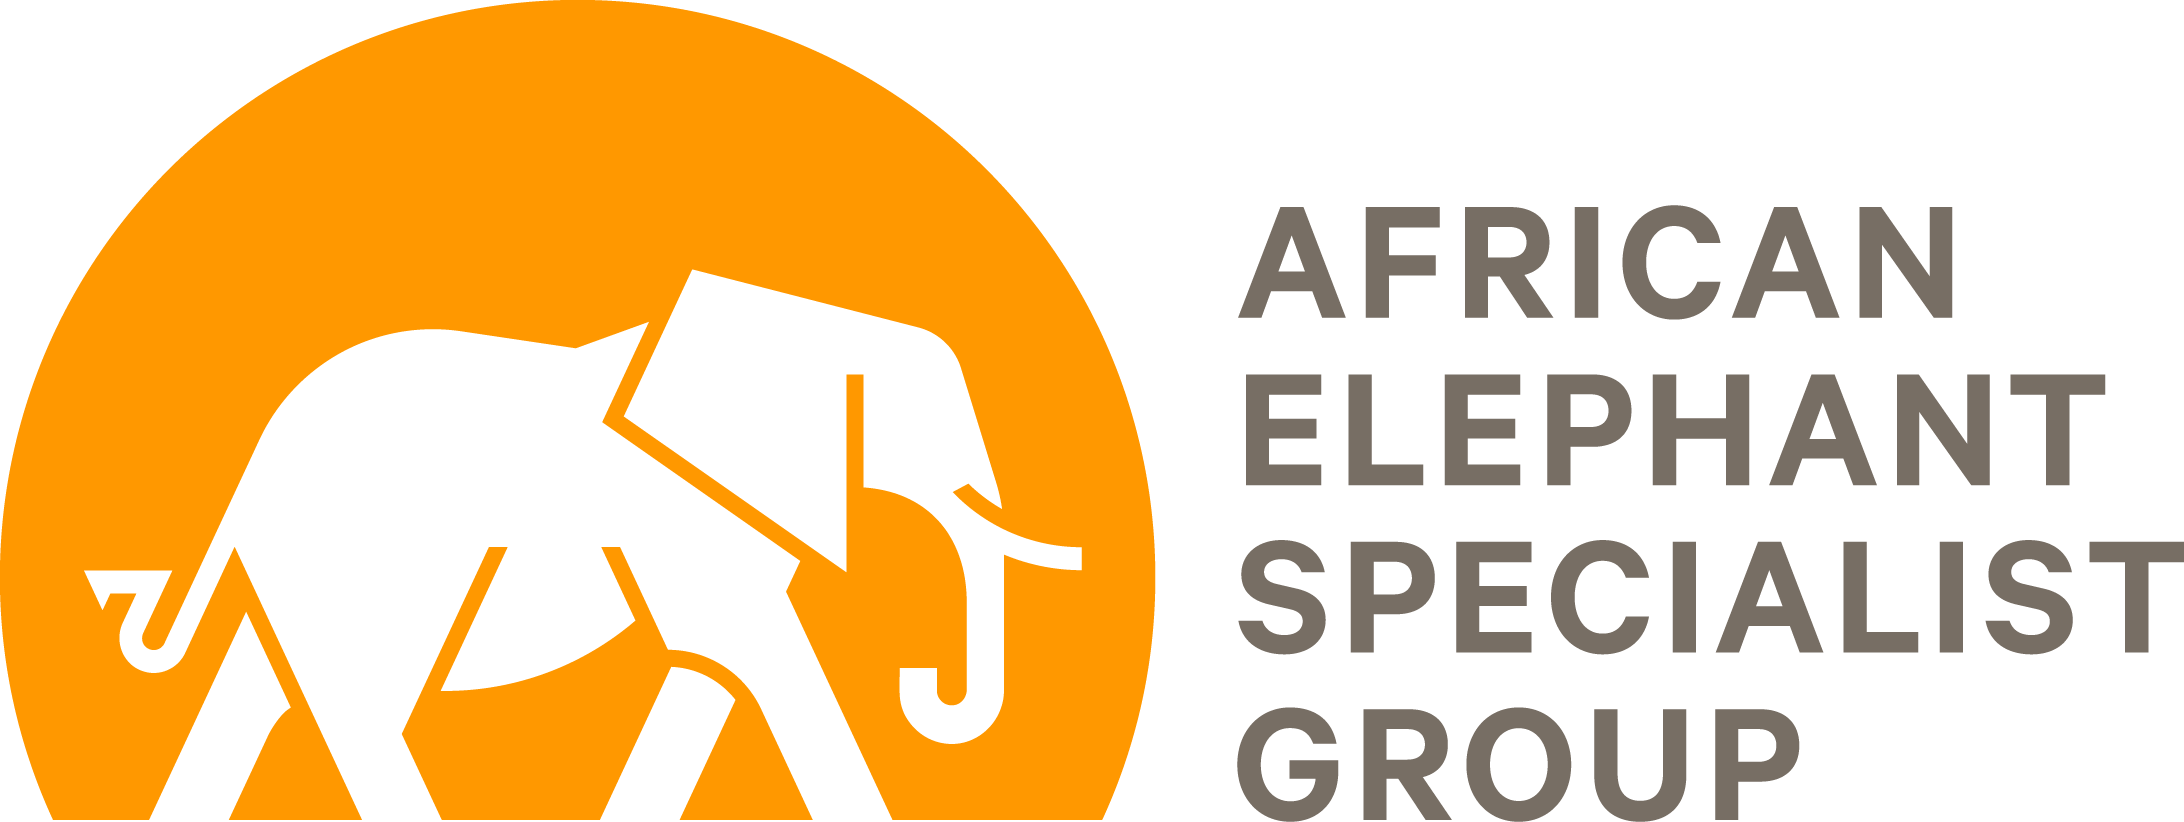 African Elephant Specialist Group logo.